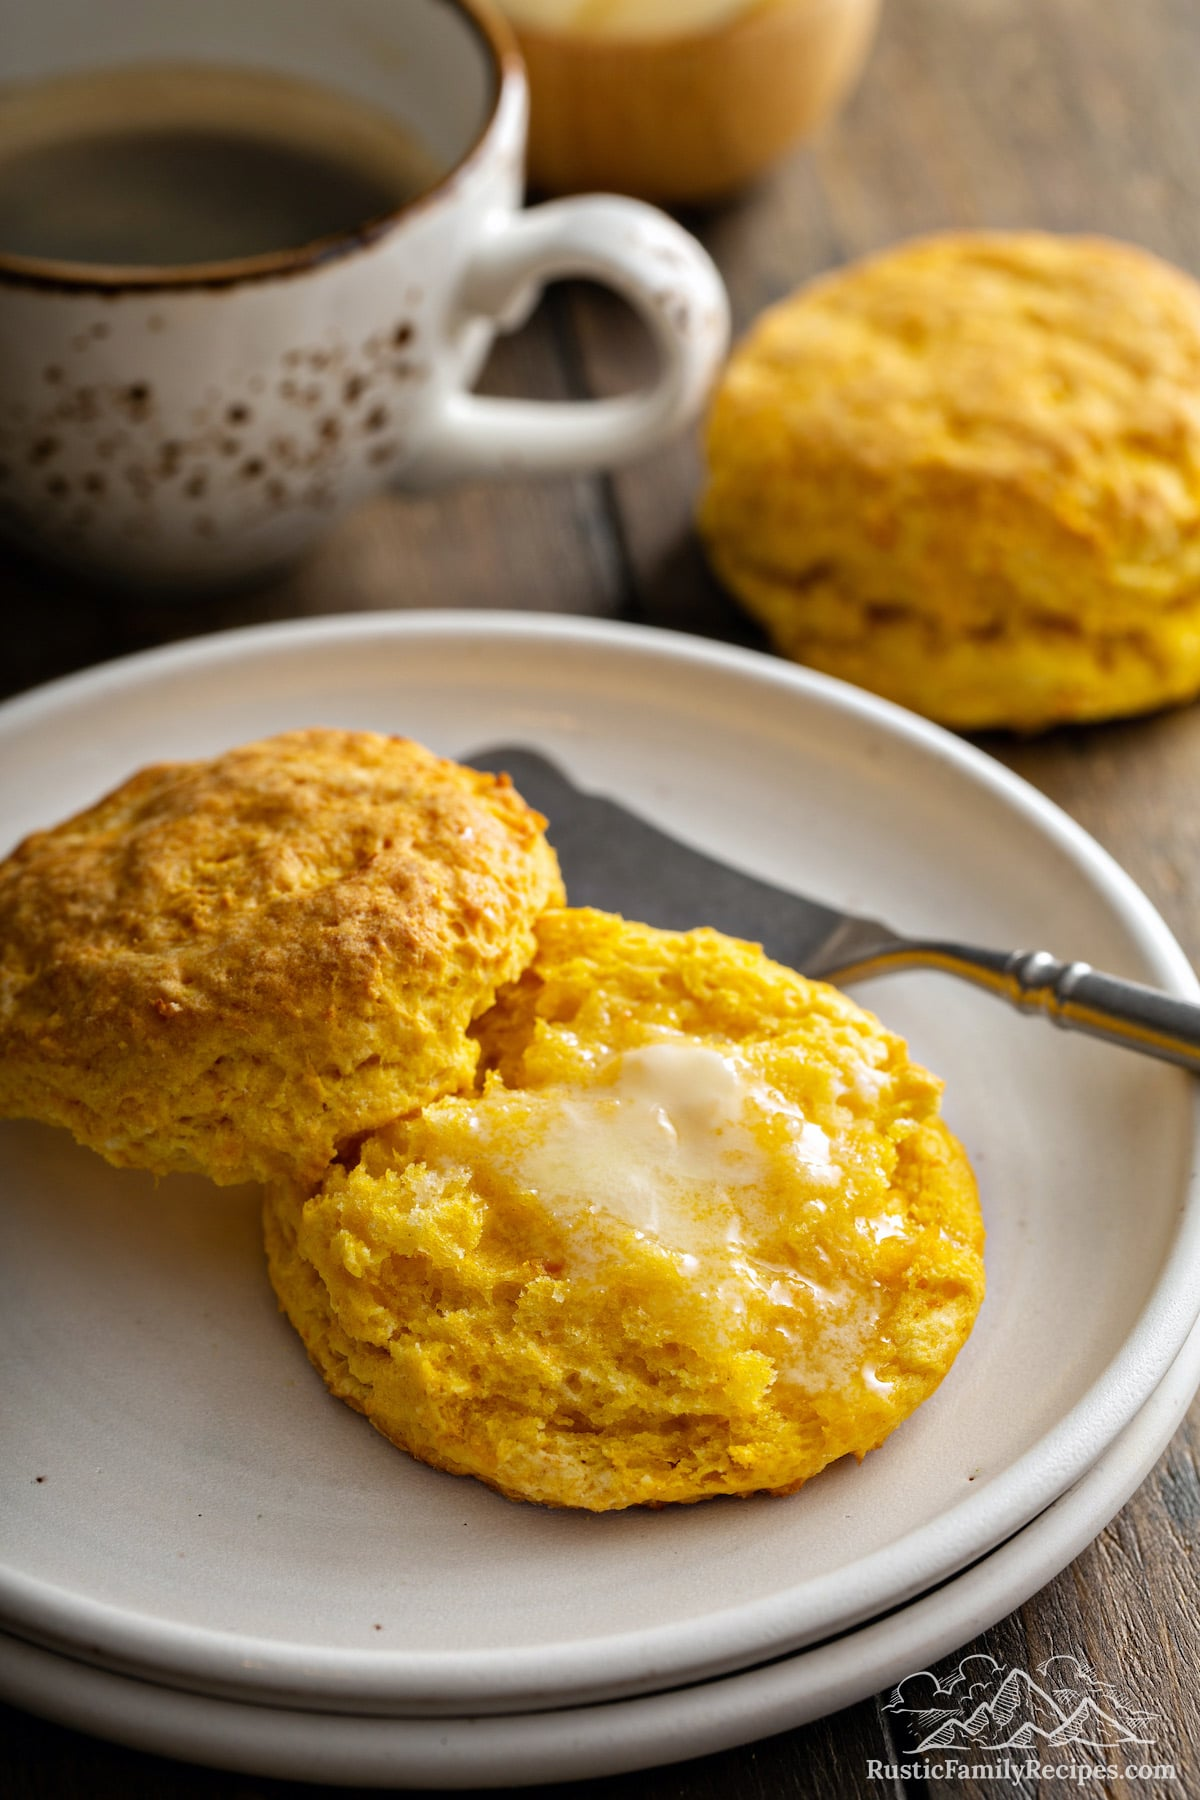 Halved Sweet Potato Biscuit topped with melted butter, on white plate